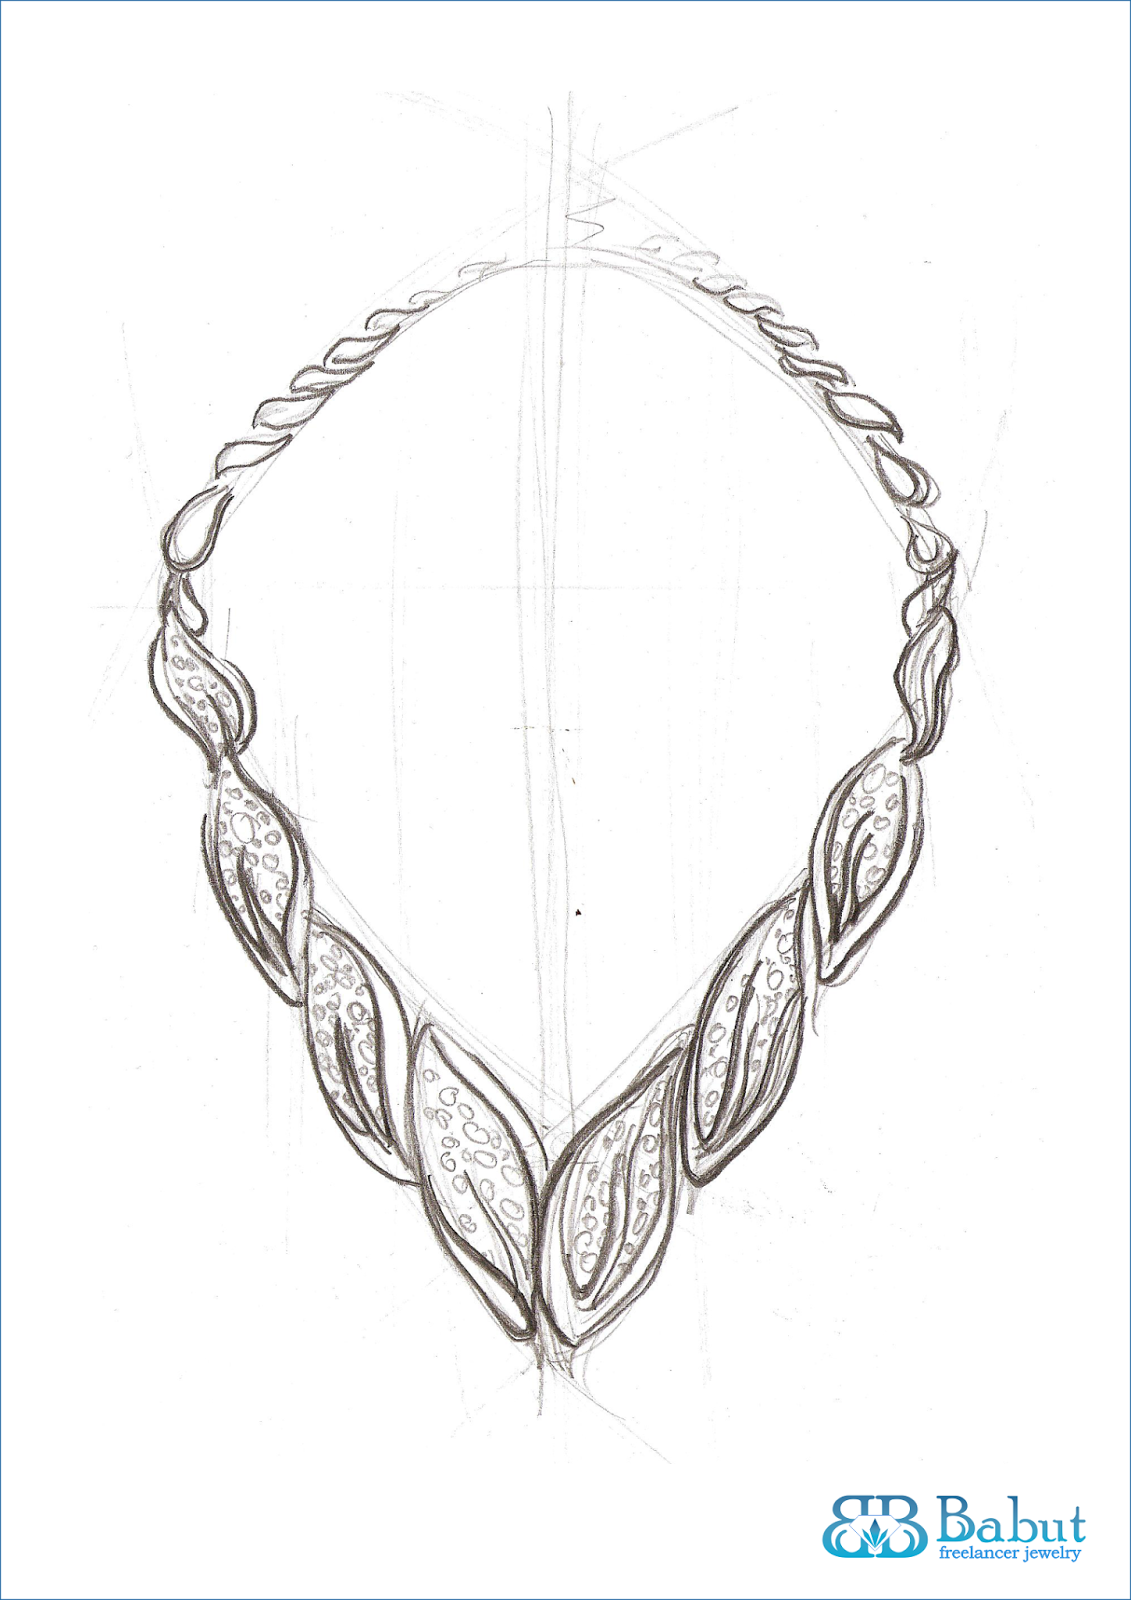 sketches design jewelry - Babut Florin Valentin | jewelry ...